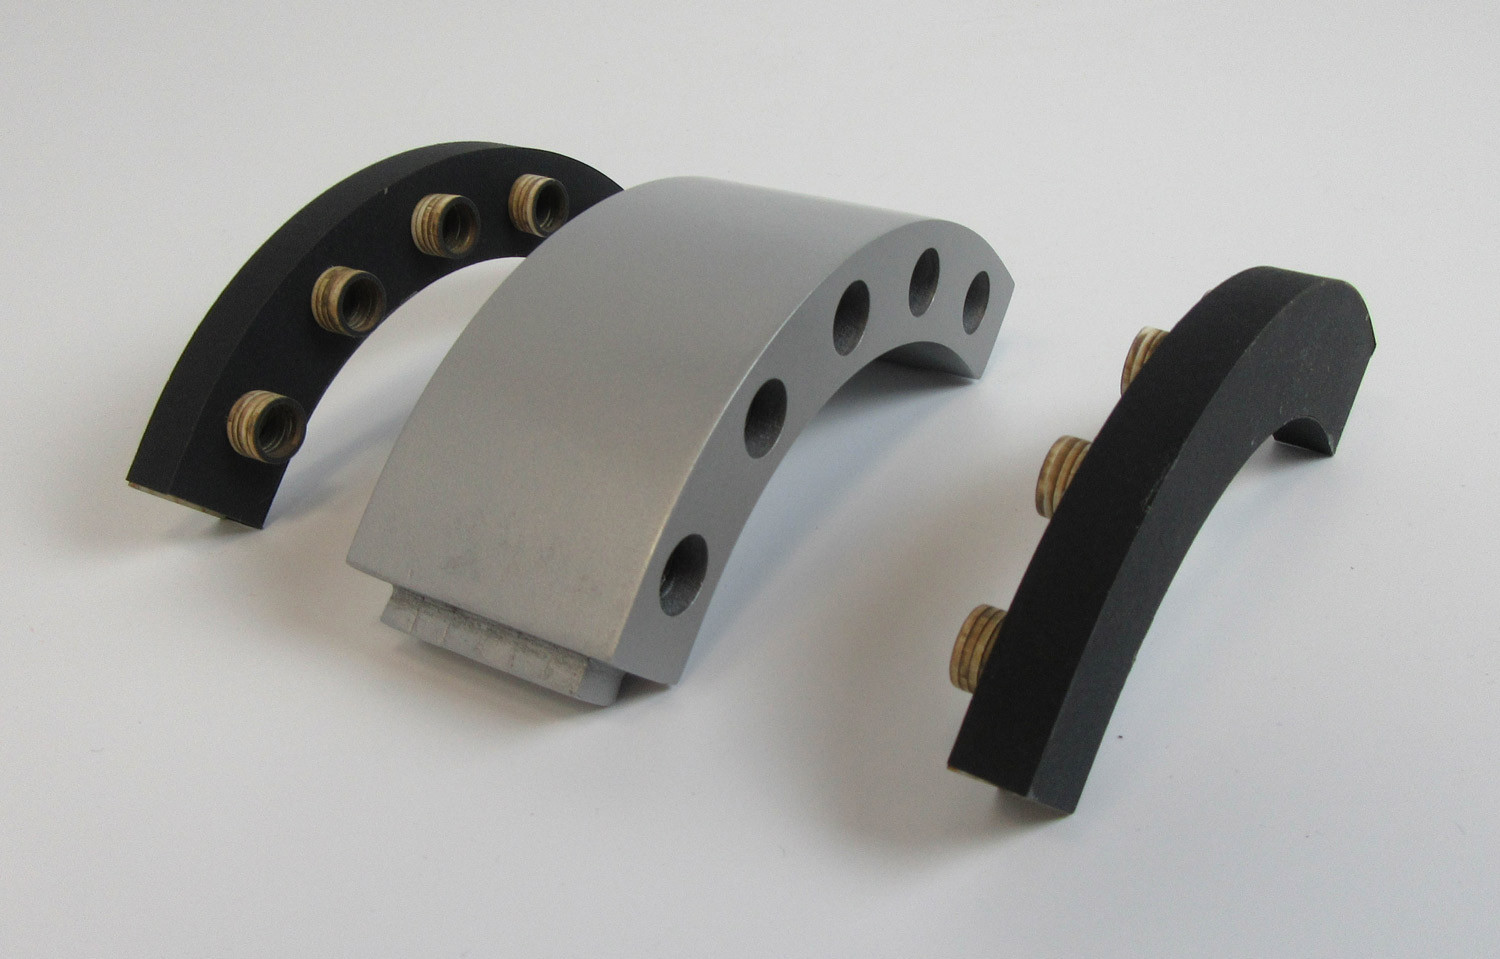 Extruded Aluminum Connector Elbow with Plastic Channels